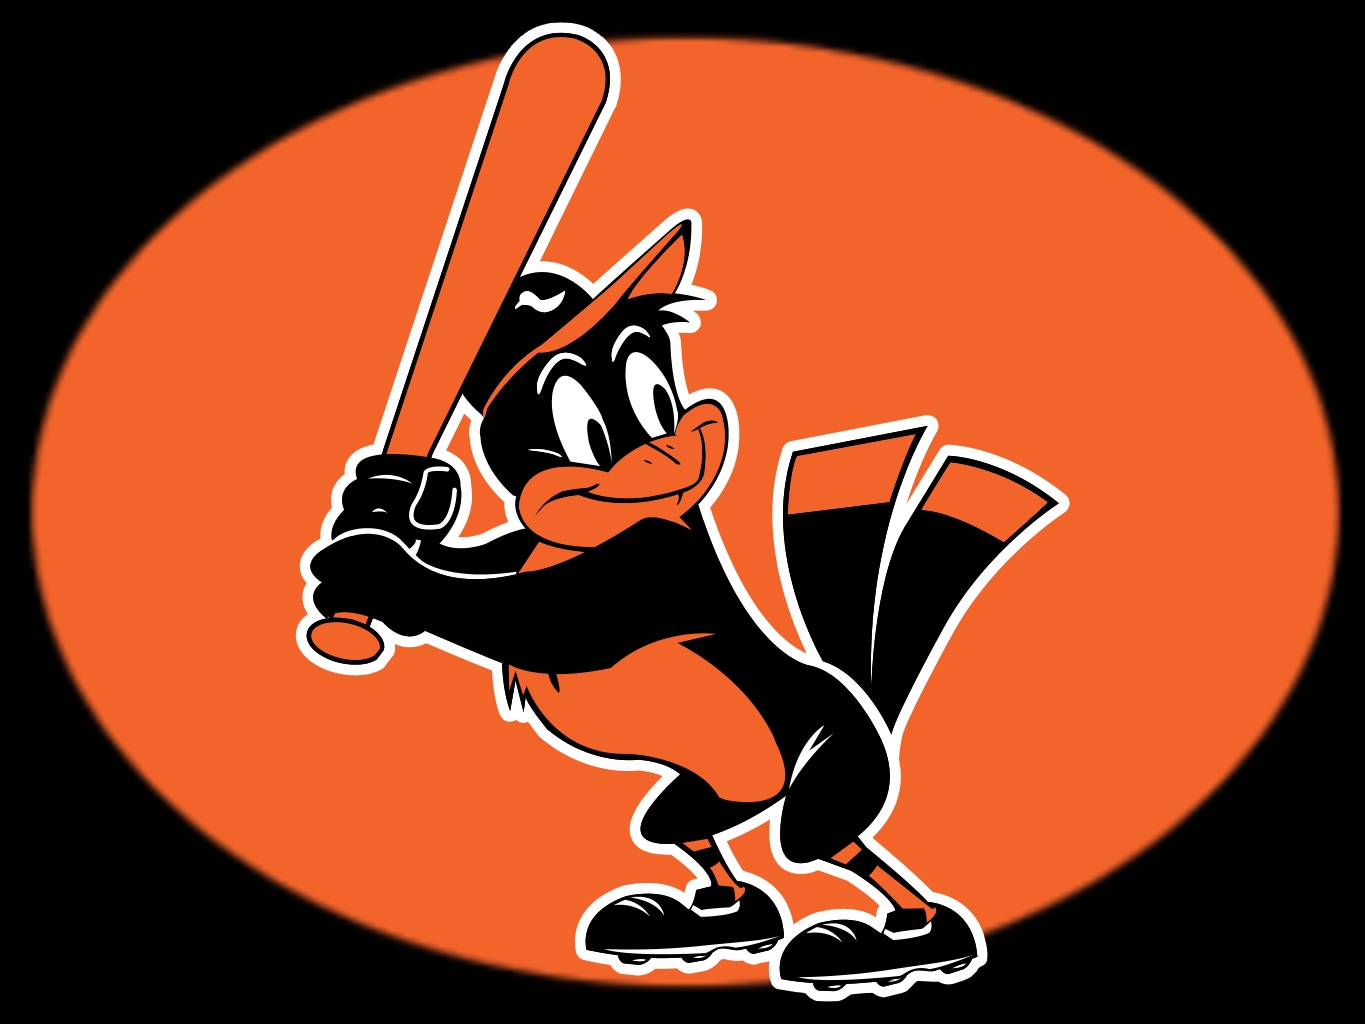 Baltimore Orioles Backgrounds, Compatible - PC, Mobile, Gadgets| 1365x1024 px